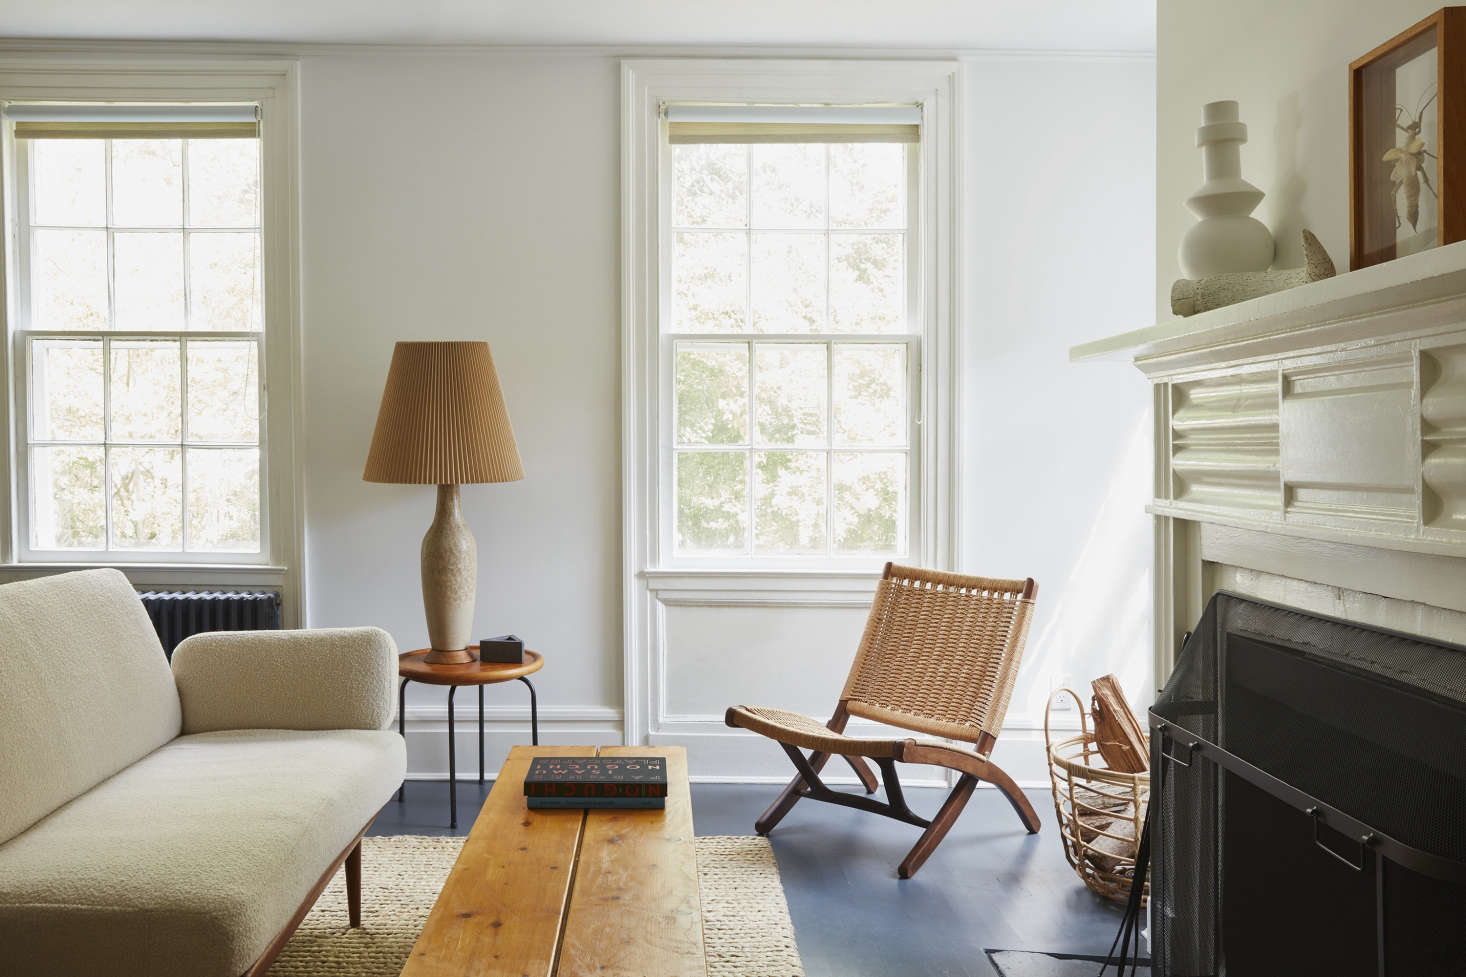 Simple roller shades in A Colonial House in Bellport with Uncommon Style from French Designer C. S. Valentin. Photograph by Jonathan Hokklo.